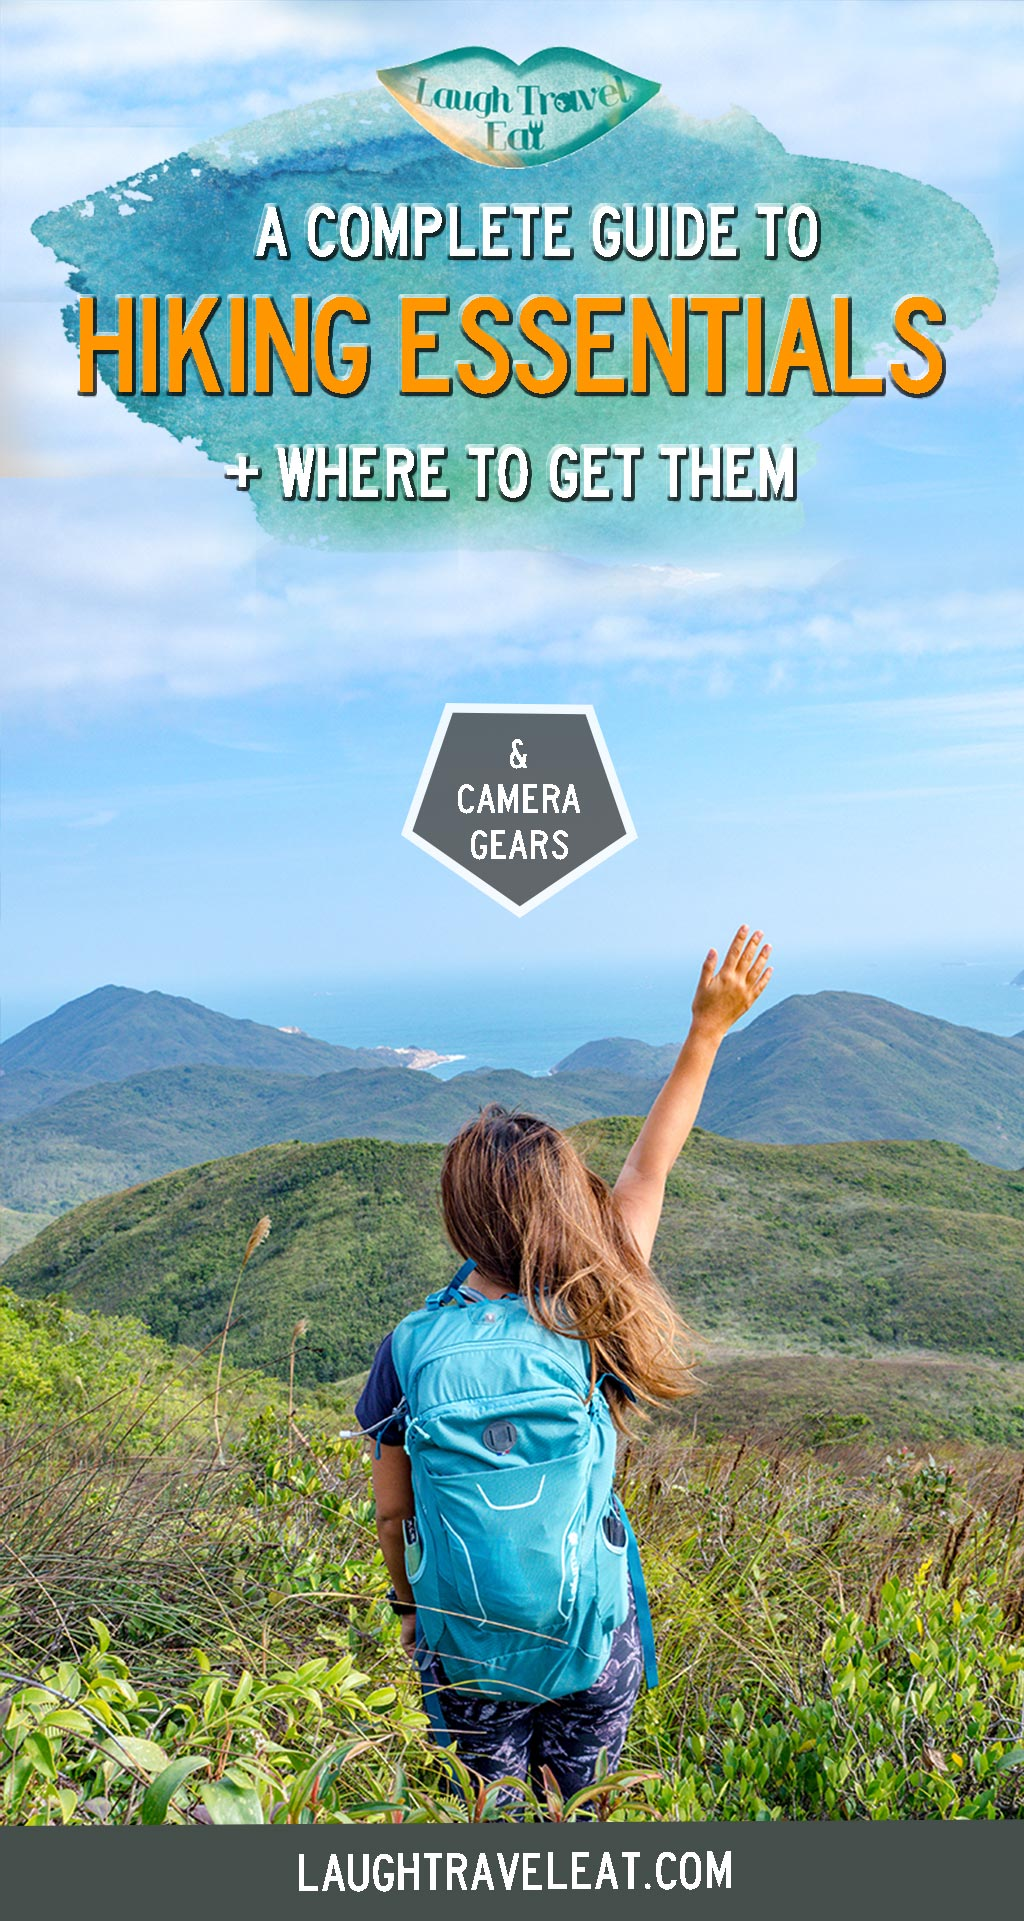 Planning on a day hike or doing more hikes? Here are some of my most trusted hiking essentials and gears - whether you want to be practical, looks cute, or want to see some reviews! Bonus: camera gears that I use! #hiking #hike #packinglist #hikingpackinglist